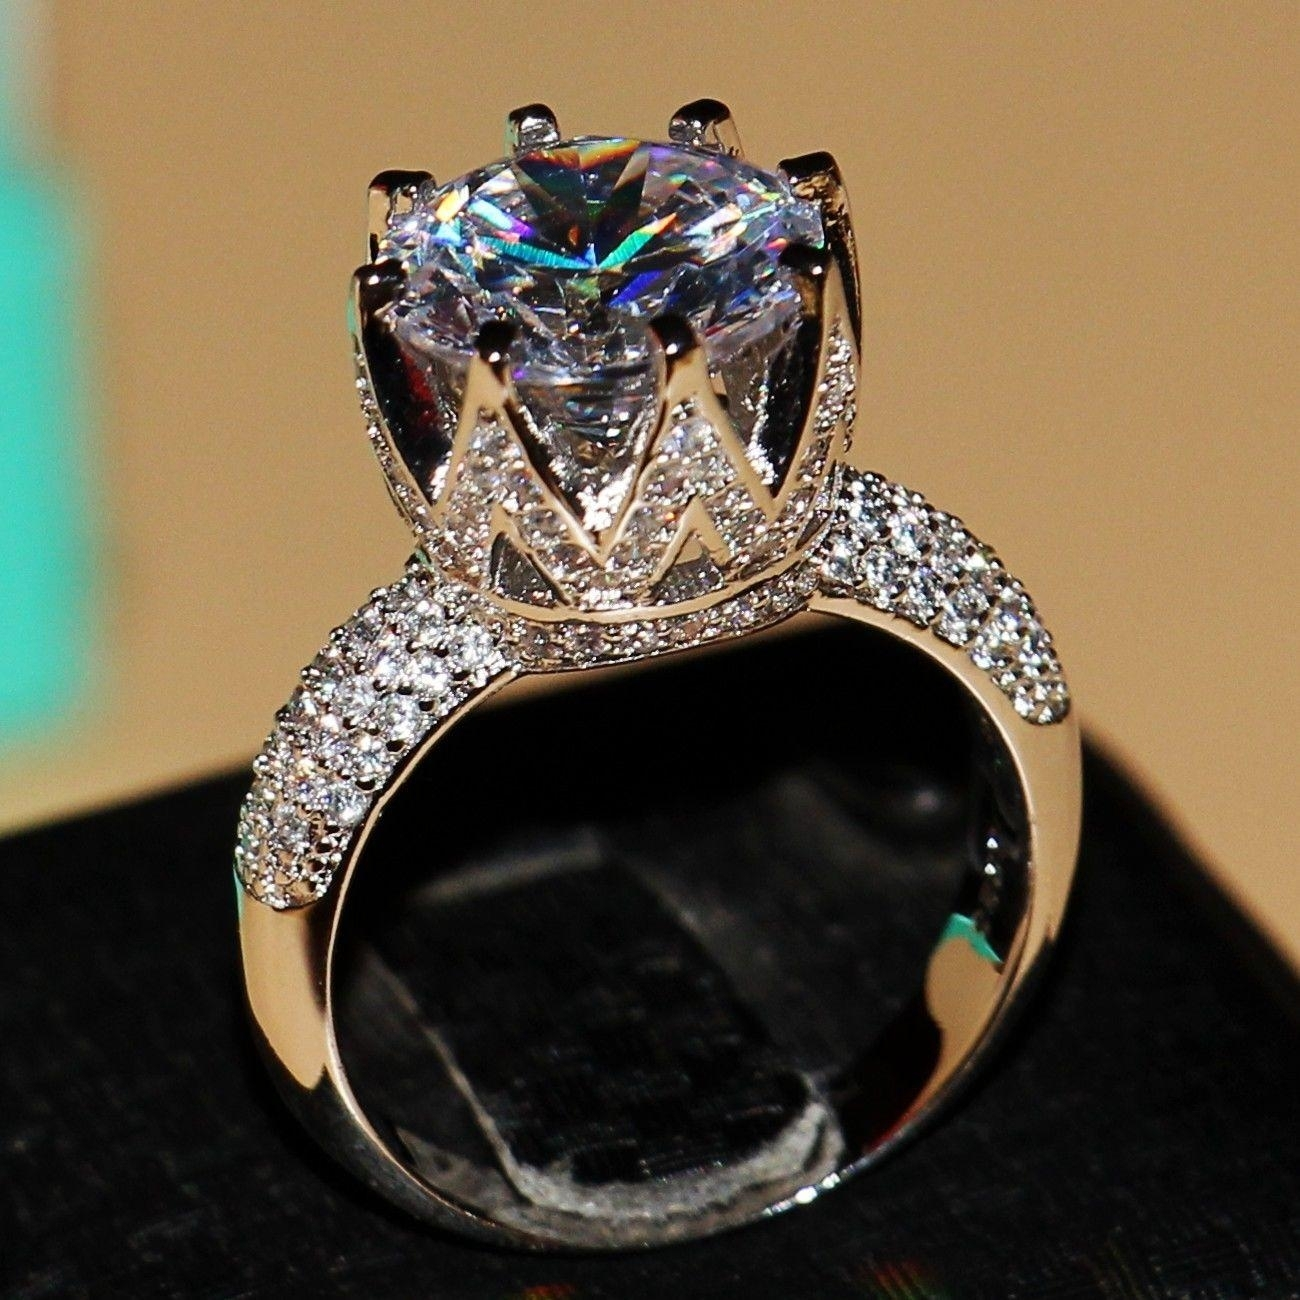 2018 Victoria Wieck 8Ct Big Stone Solitaire 925 Sterling Silver With Regard To 2017 Diamond Anniversary Bands In Sterling Silver (Gallery 12 of 15)